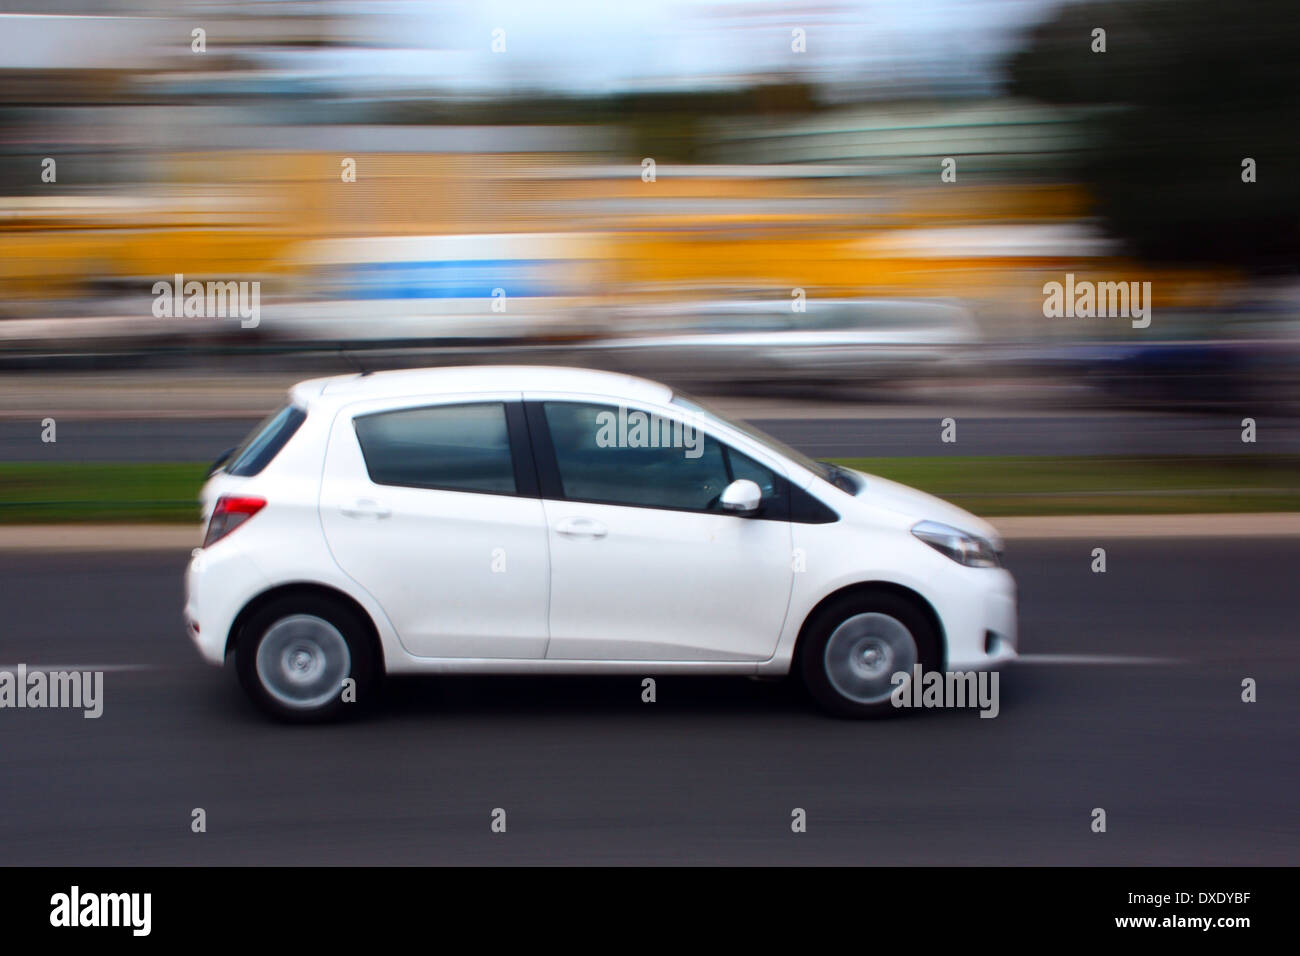 Car moving, Blurred motion - Stock Image